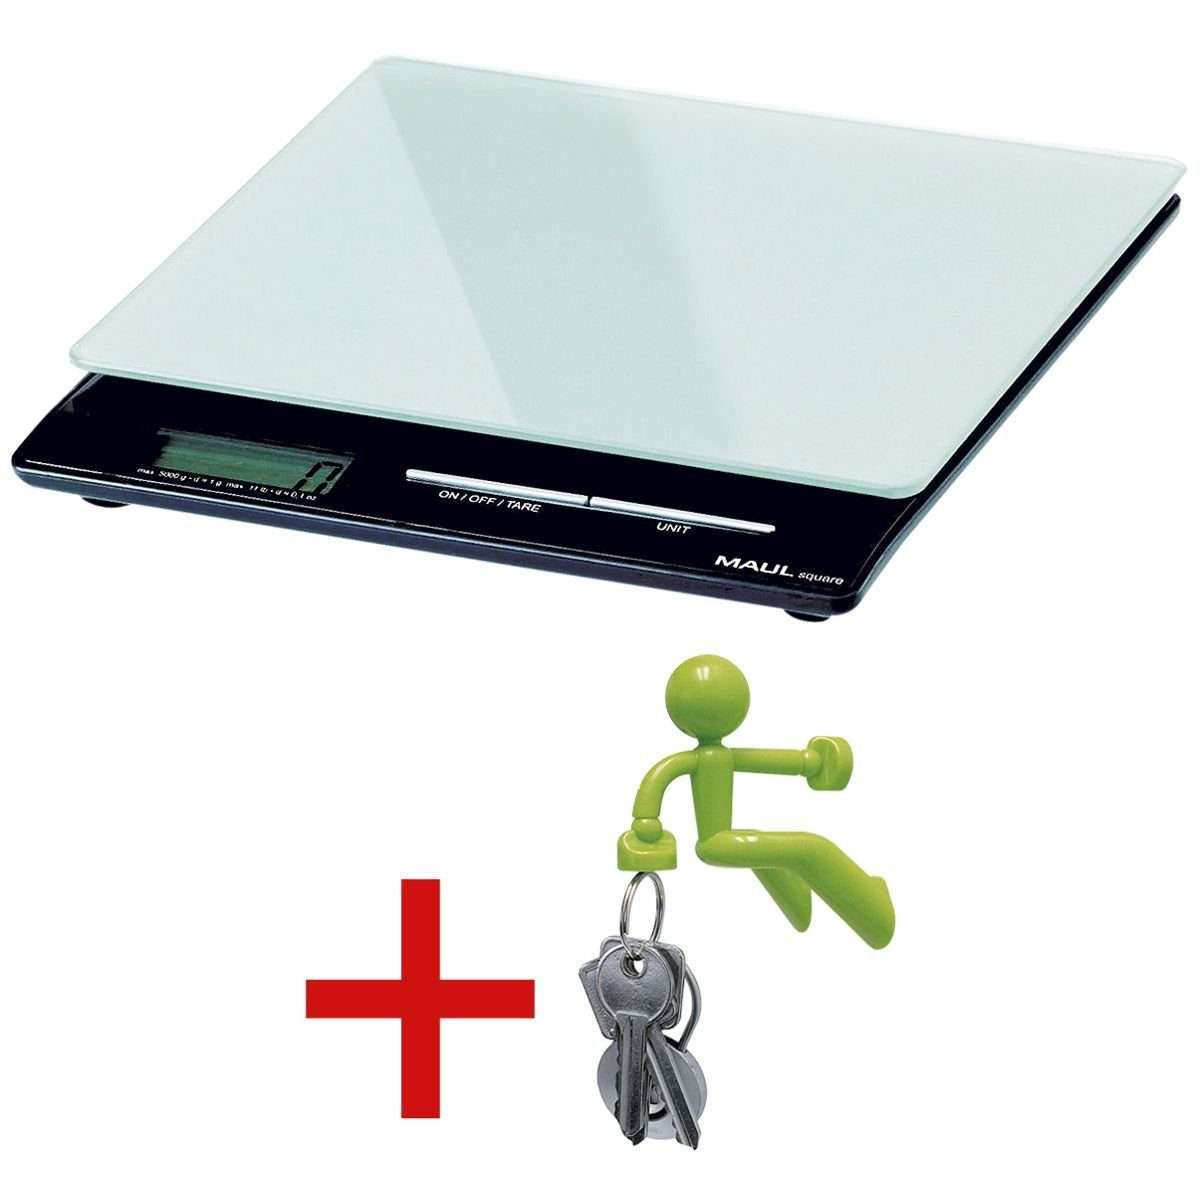 Maul Office Briefwaage »square« inkl. Magnet »Neodym-Magne... 1 Set